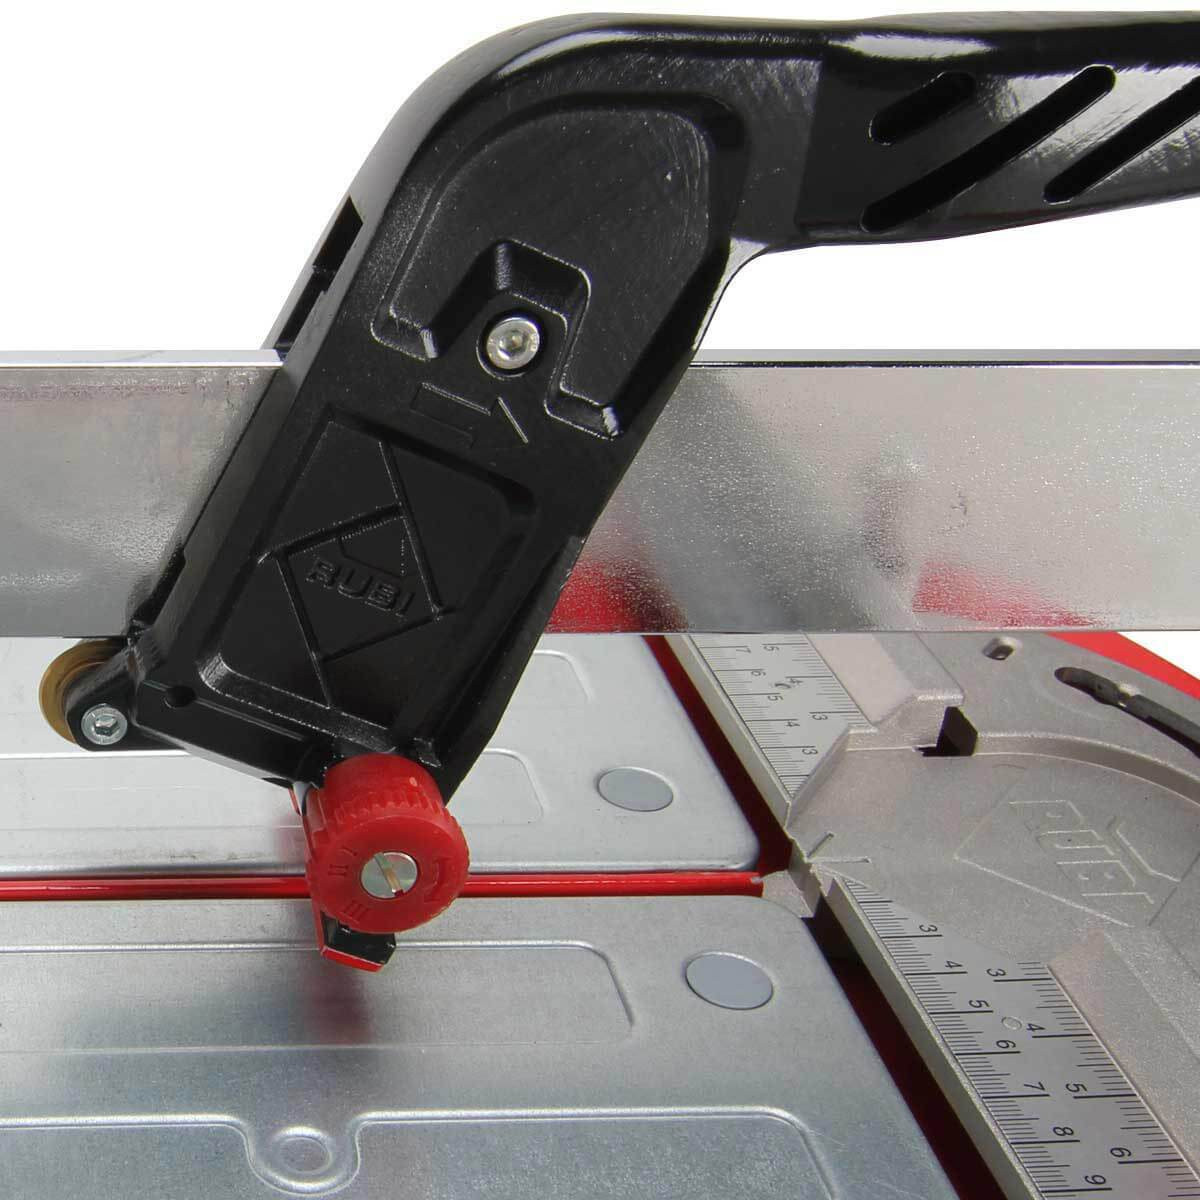 Rubi TP-T Tile cutter scoring